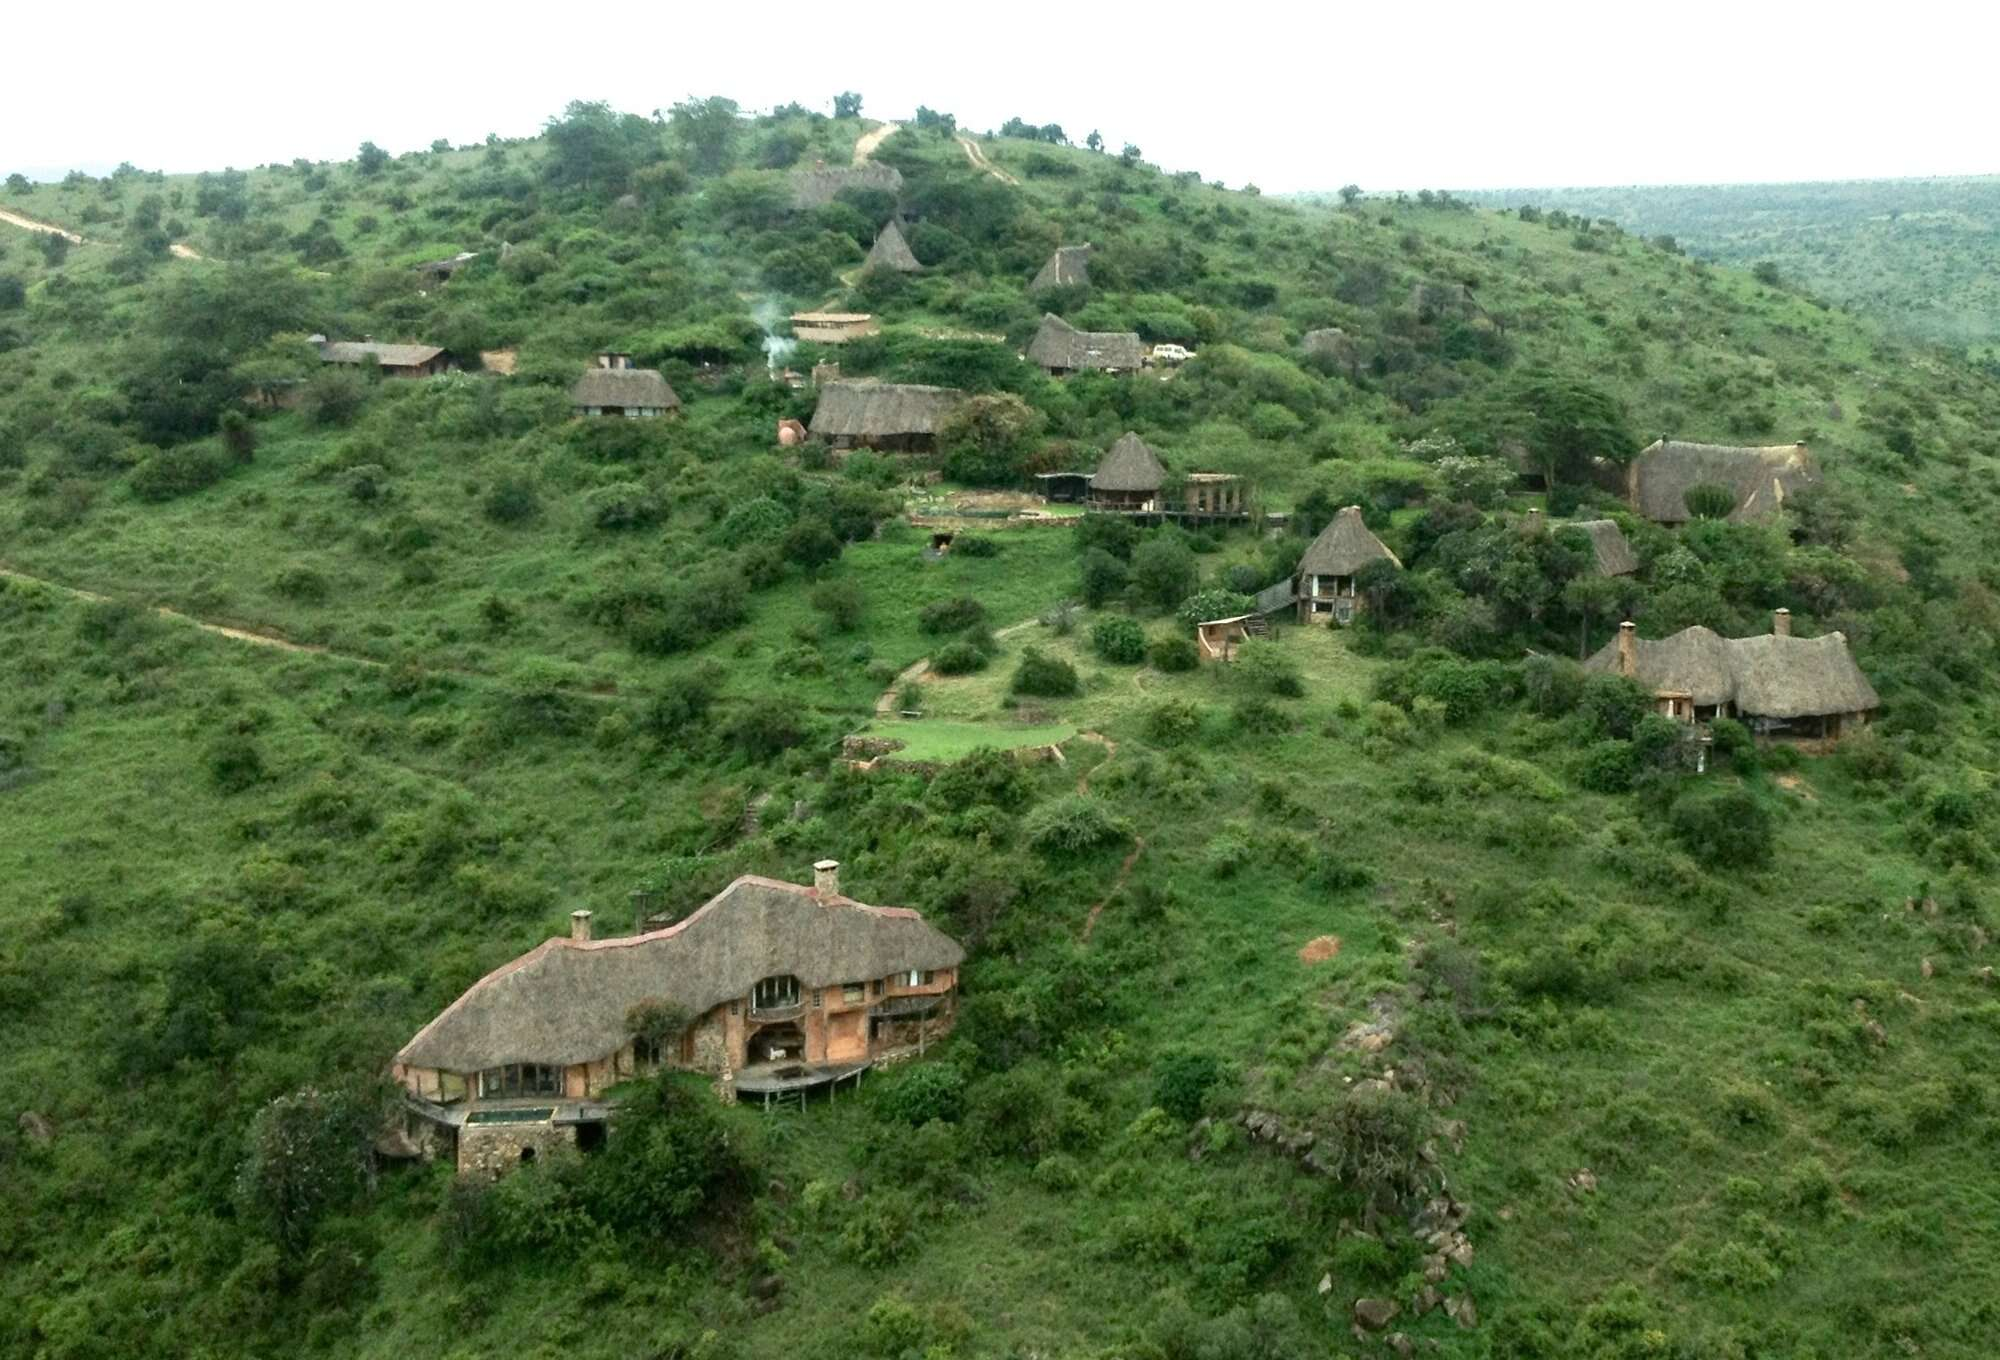 Tailor-made fly-in safari in Kenya safari, visiting the Borana Ranch and Mara North Conservancy.